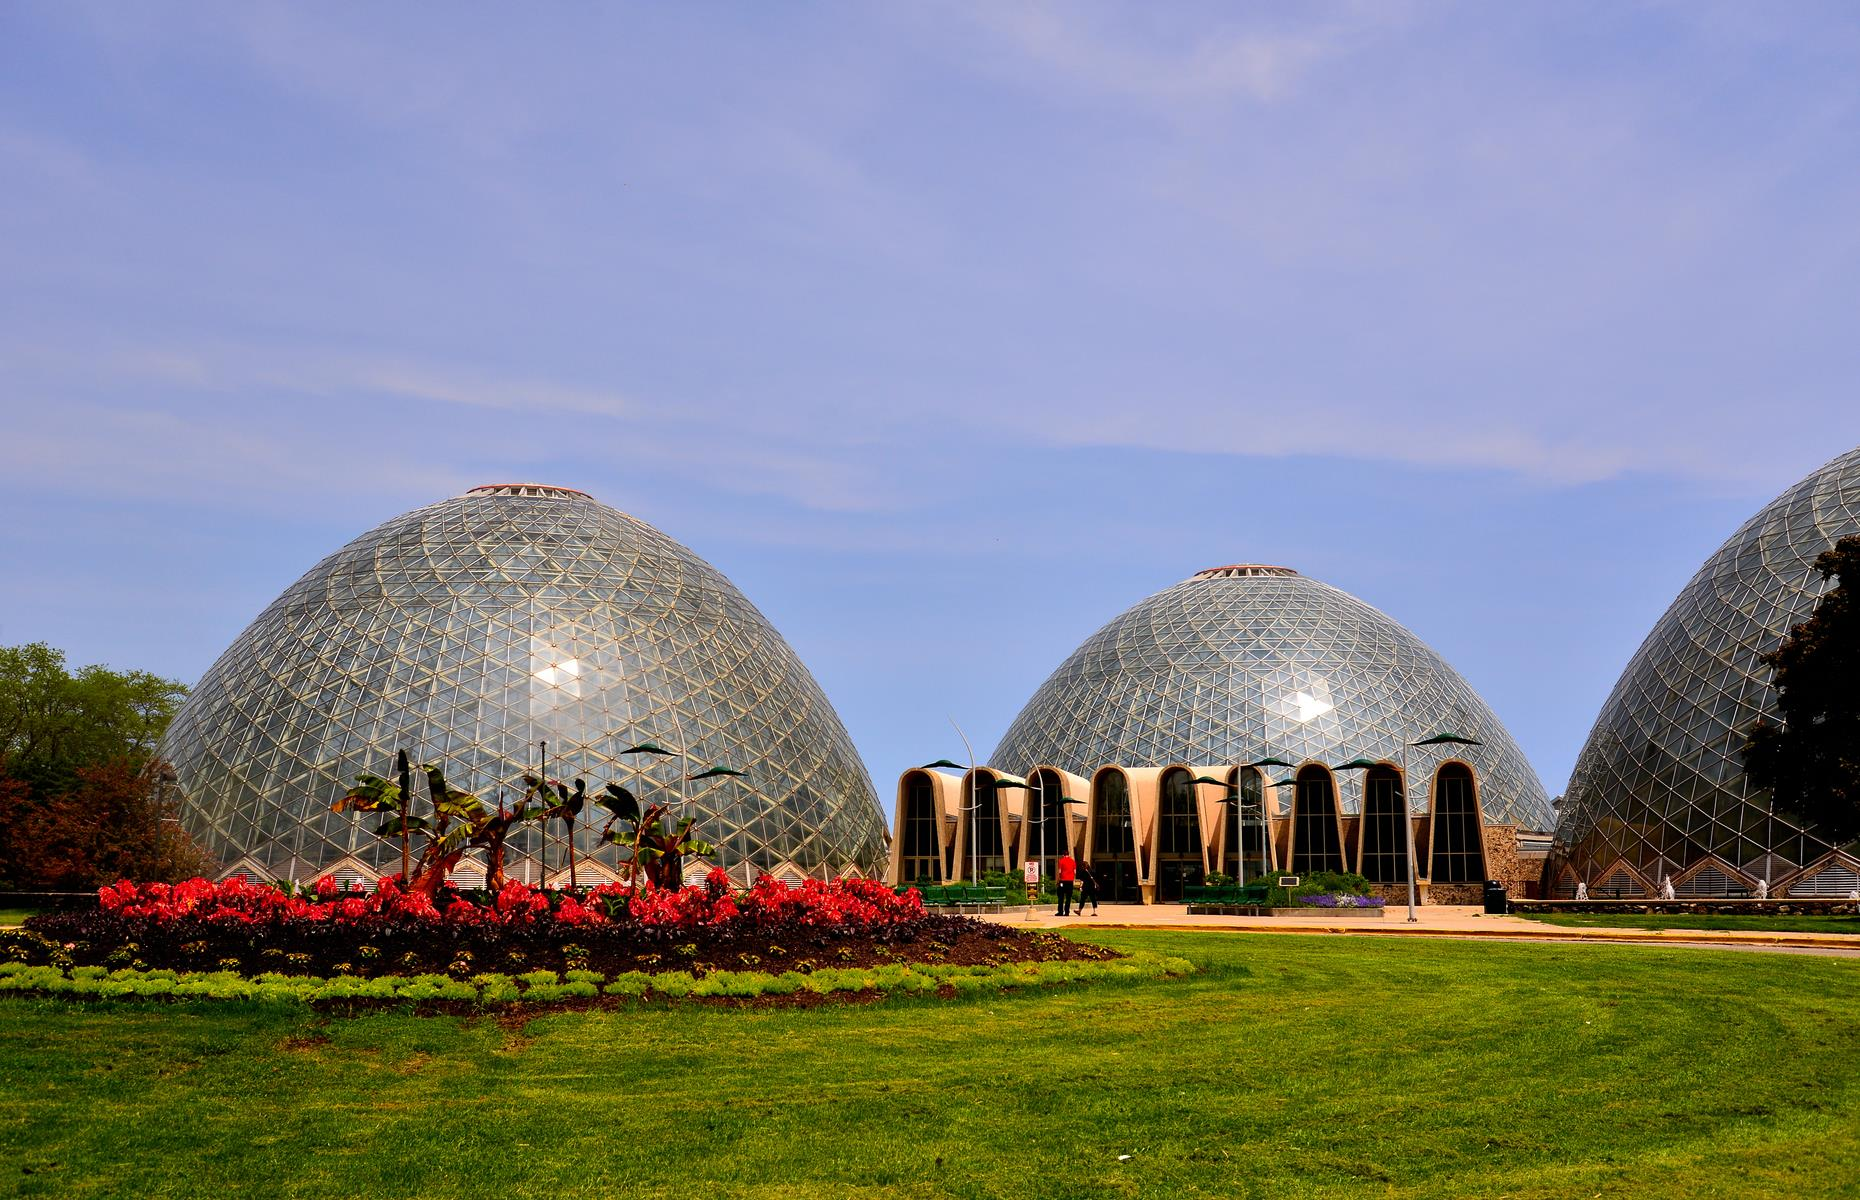 Slide 2 of 31: Designed by Milwaukee architect Donald L. Grieb, the trio of domes in Mitchell Park are both a fine example of Mid-century Modern architecture and a beloved local landmark. Built between 1959 and 1967, the domes also house a heady array of tropical, desert and rainforest plants and blooms.